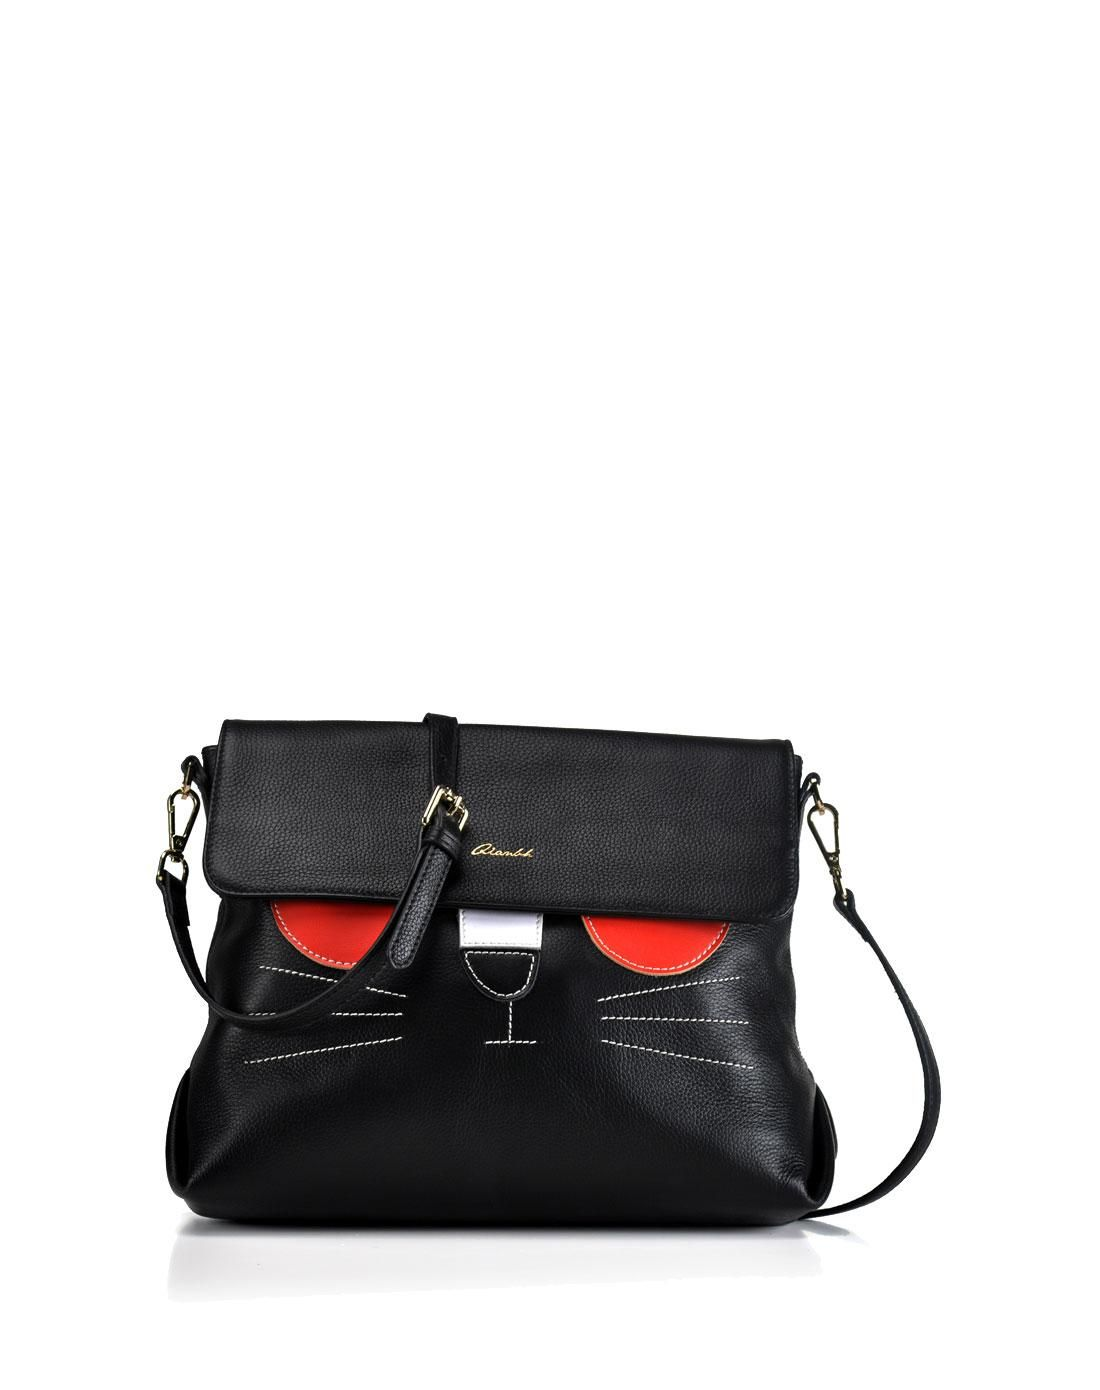 AdoreWe  VIPme Shoulder Bags - QIANBH Patched Cat Pattern Crossbody -  AdoreWe.com dc8ae7c63556a